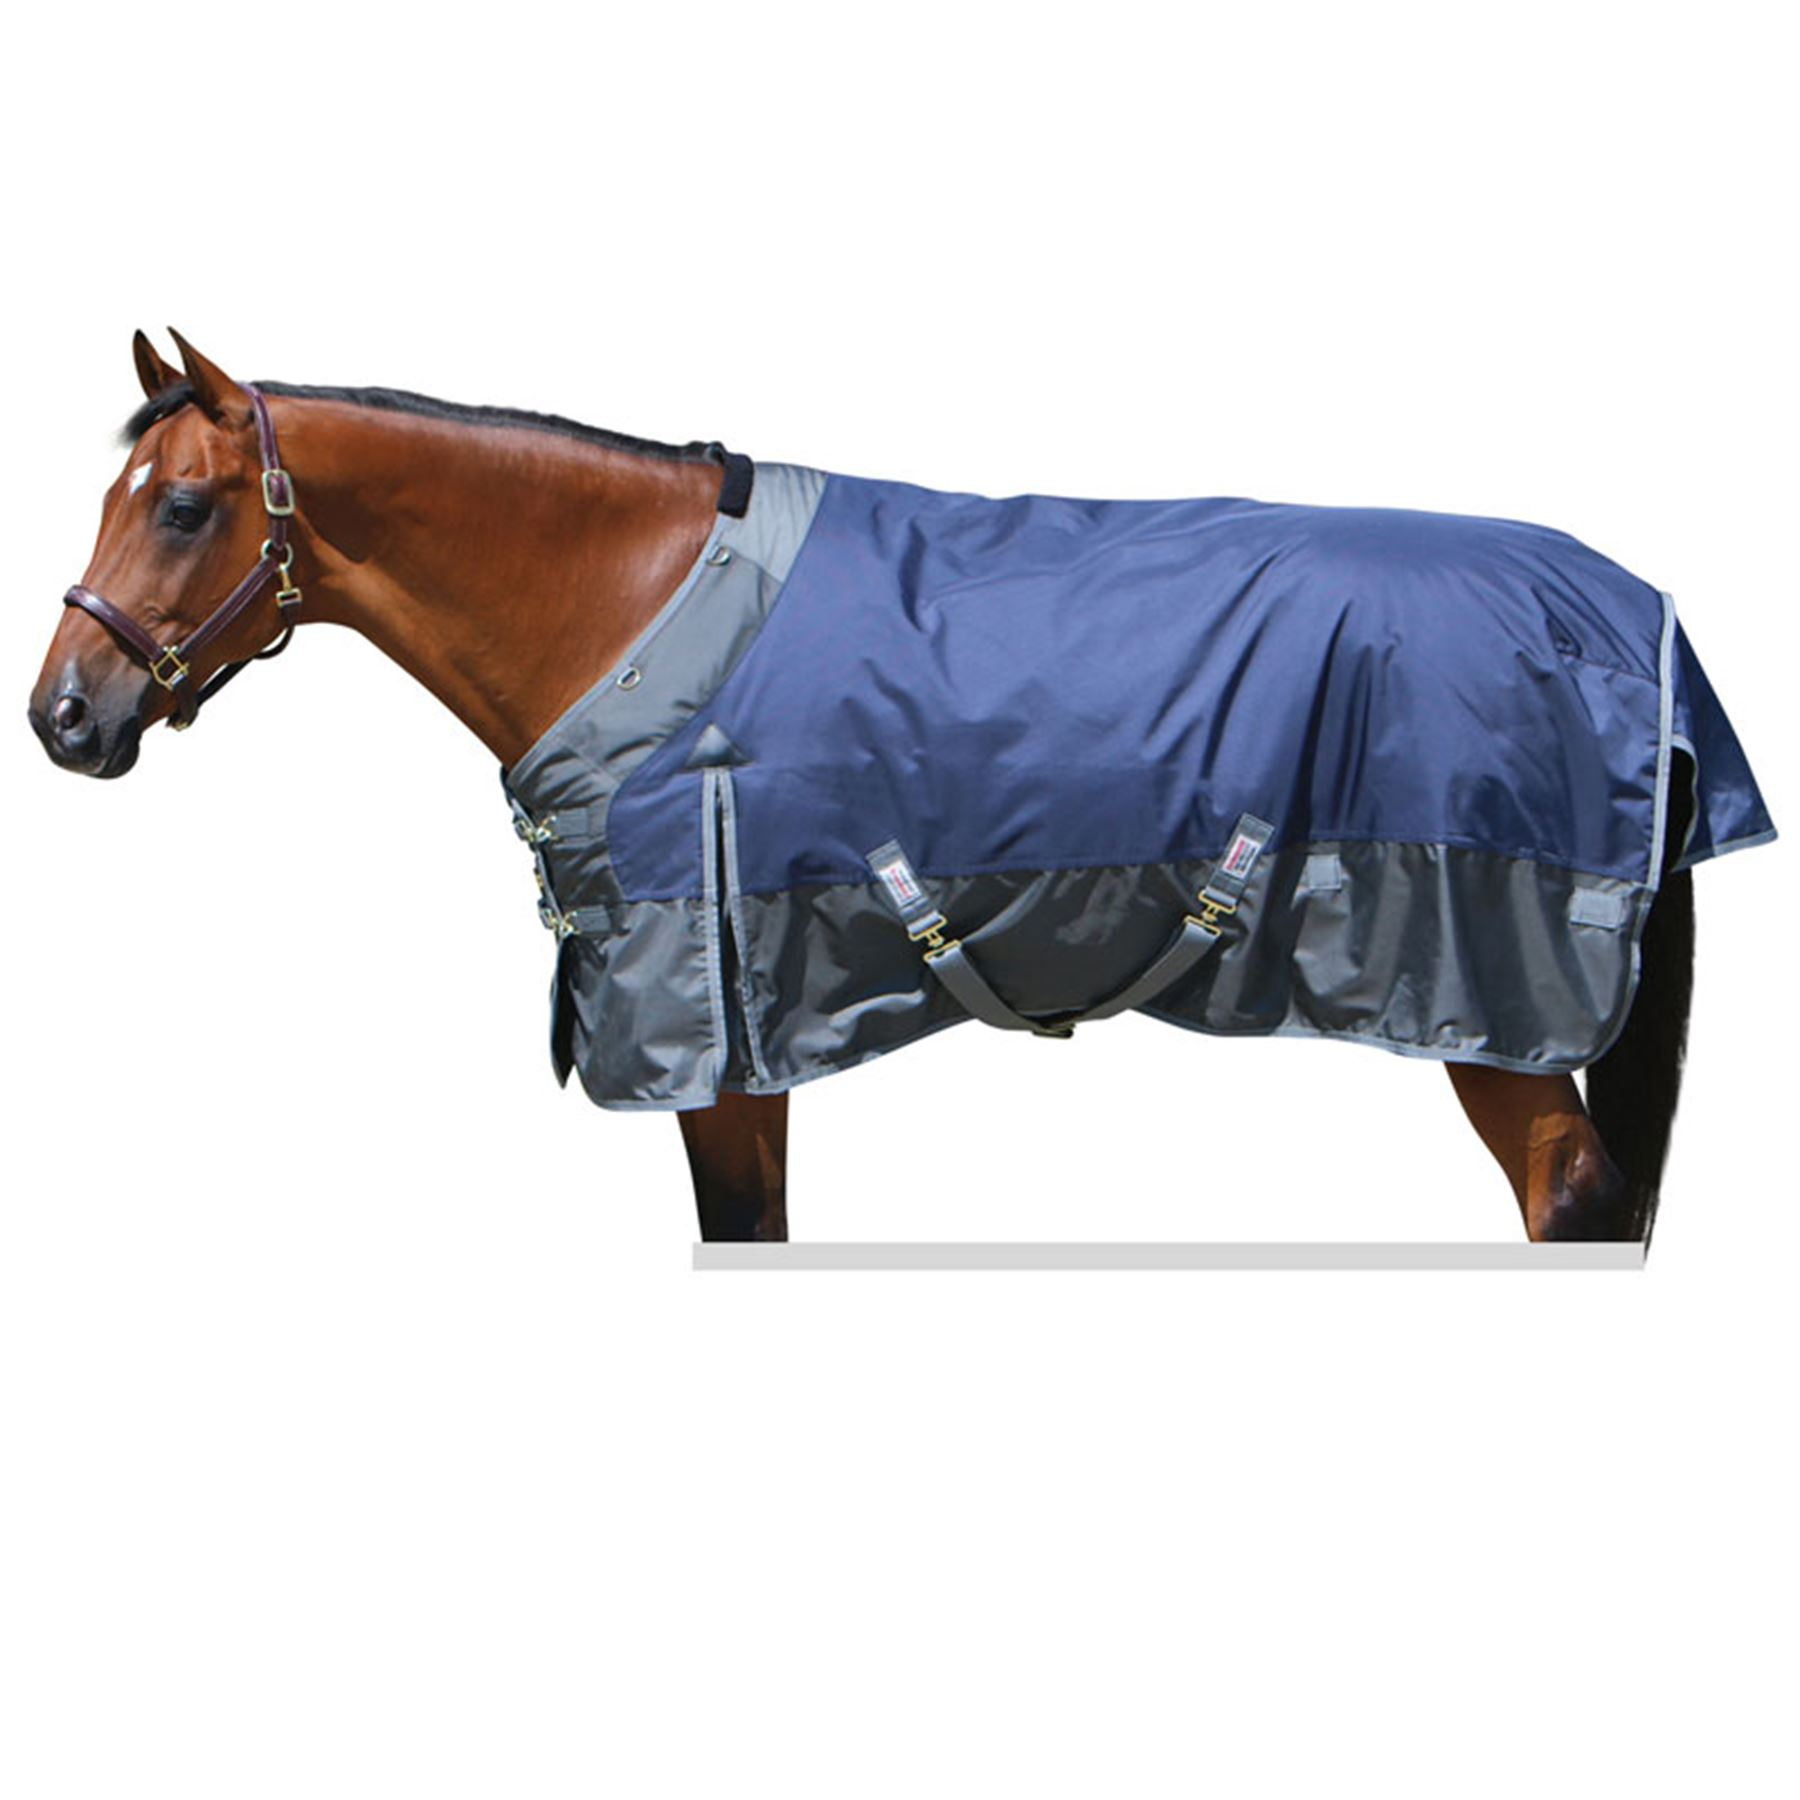 StormShield® Contour Collar Ballistic Extreme Turnout Blanket - Midweight